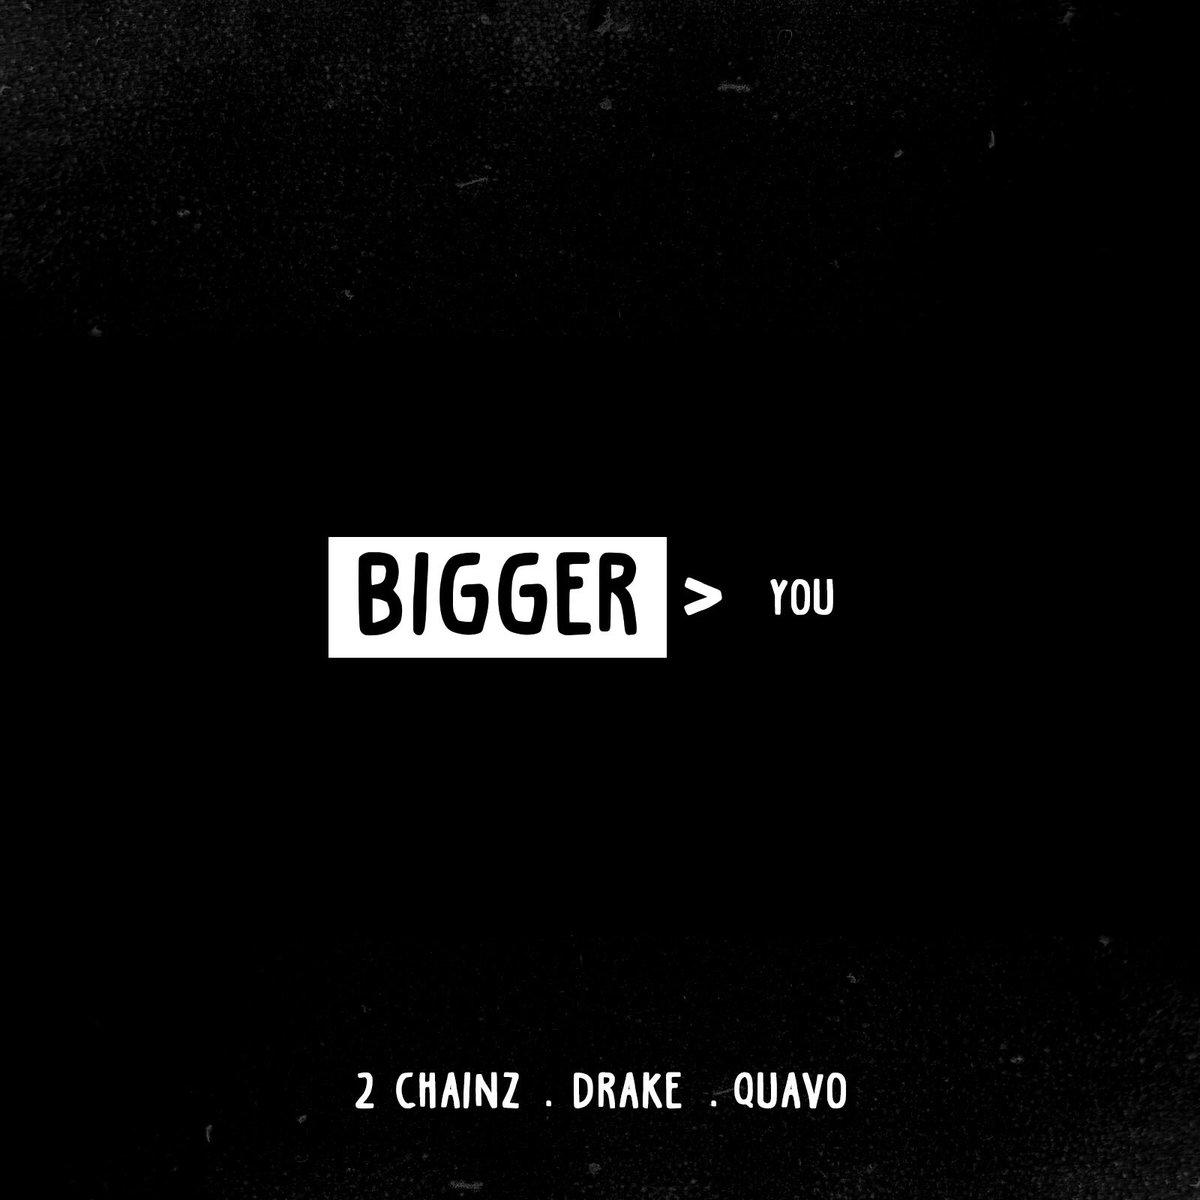 2 Chainz - Bigger Than You Ft. Drake & Quavo